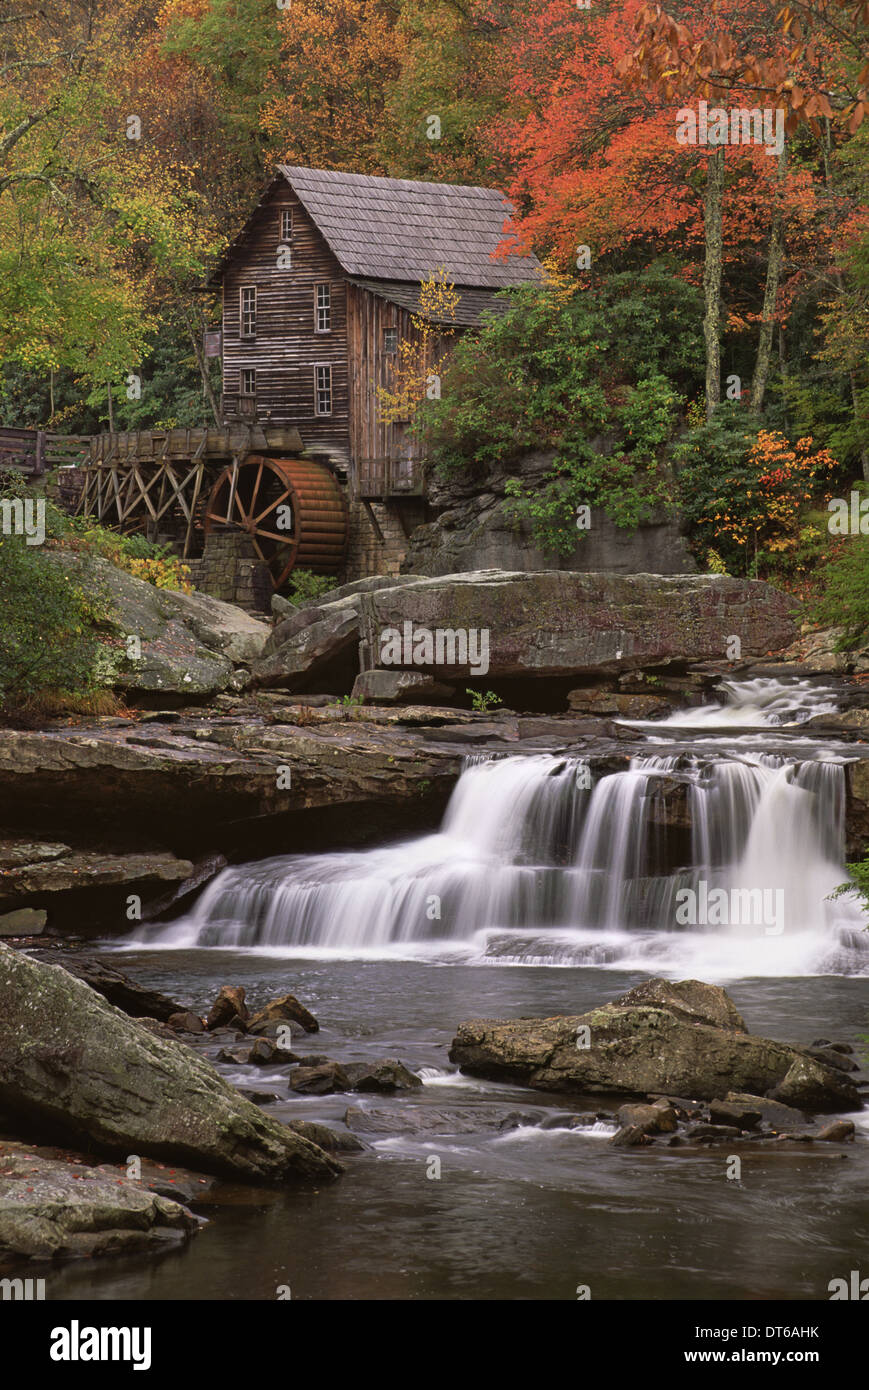 A historic grist mill building on the banks of Glade Creek in West Virginia. - Stock Image